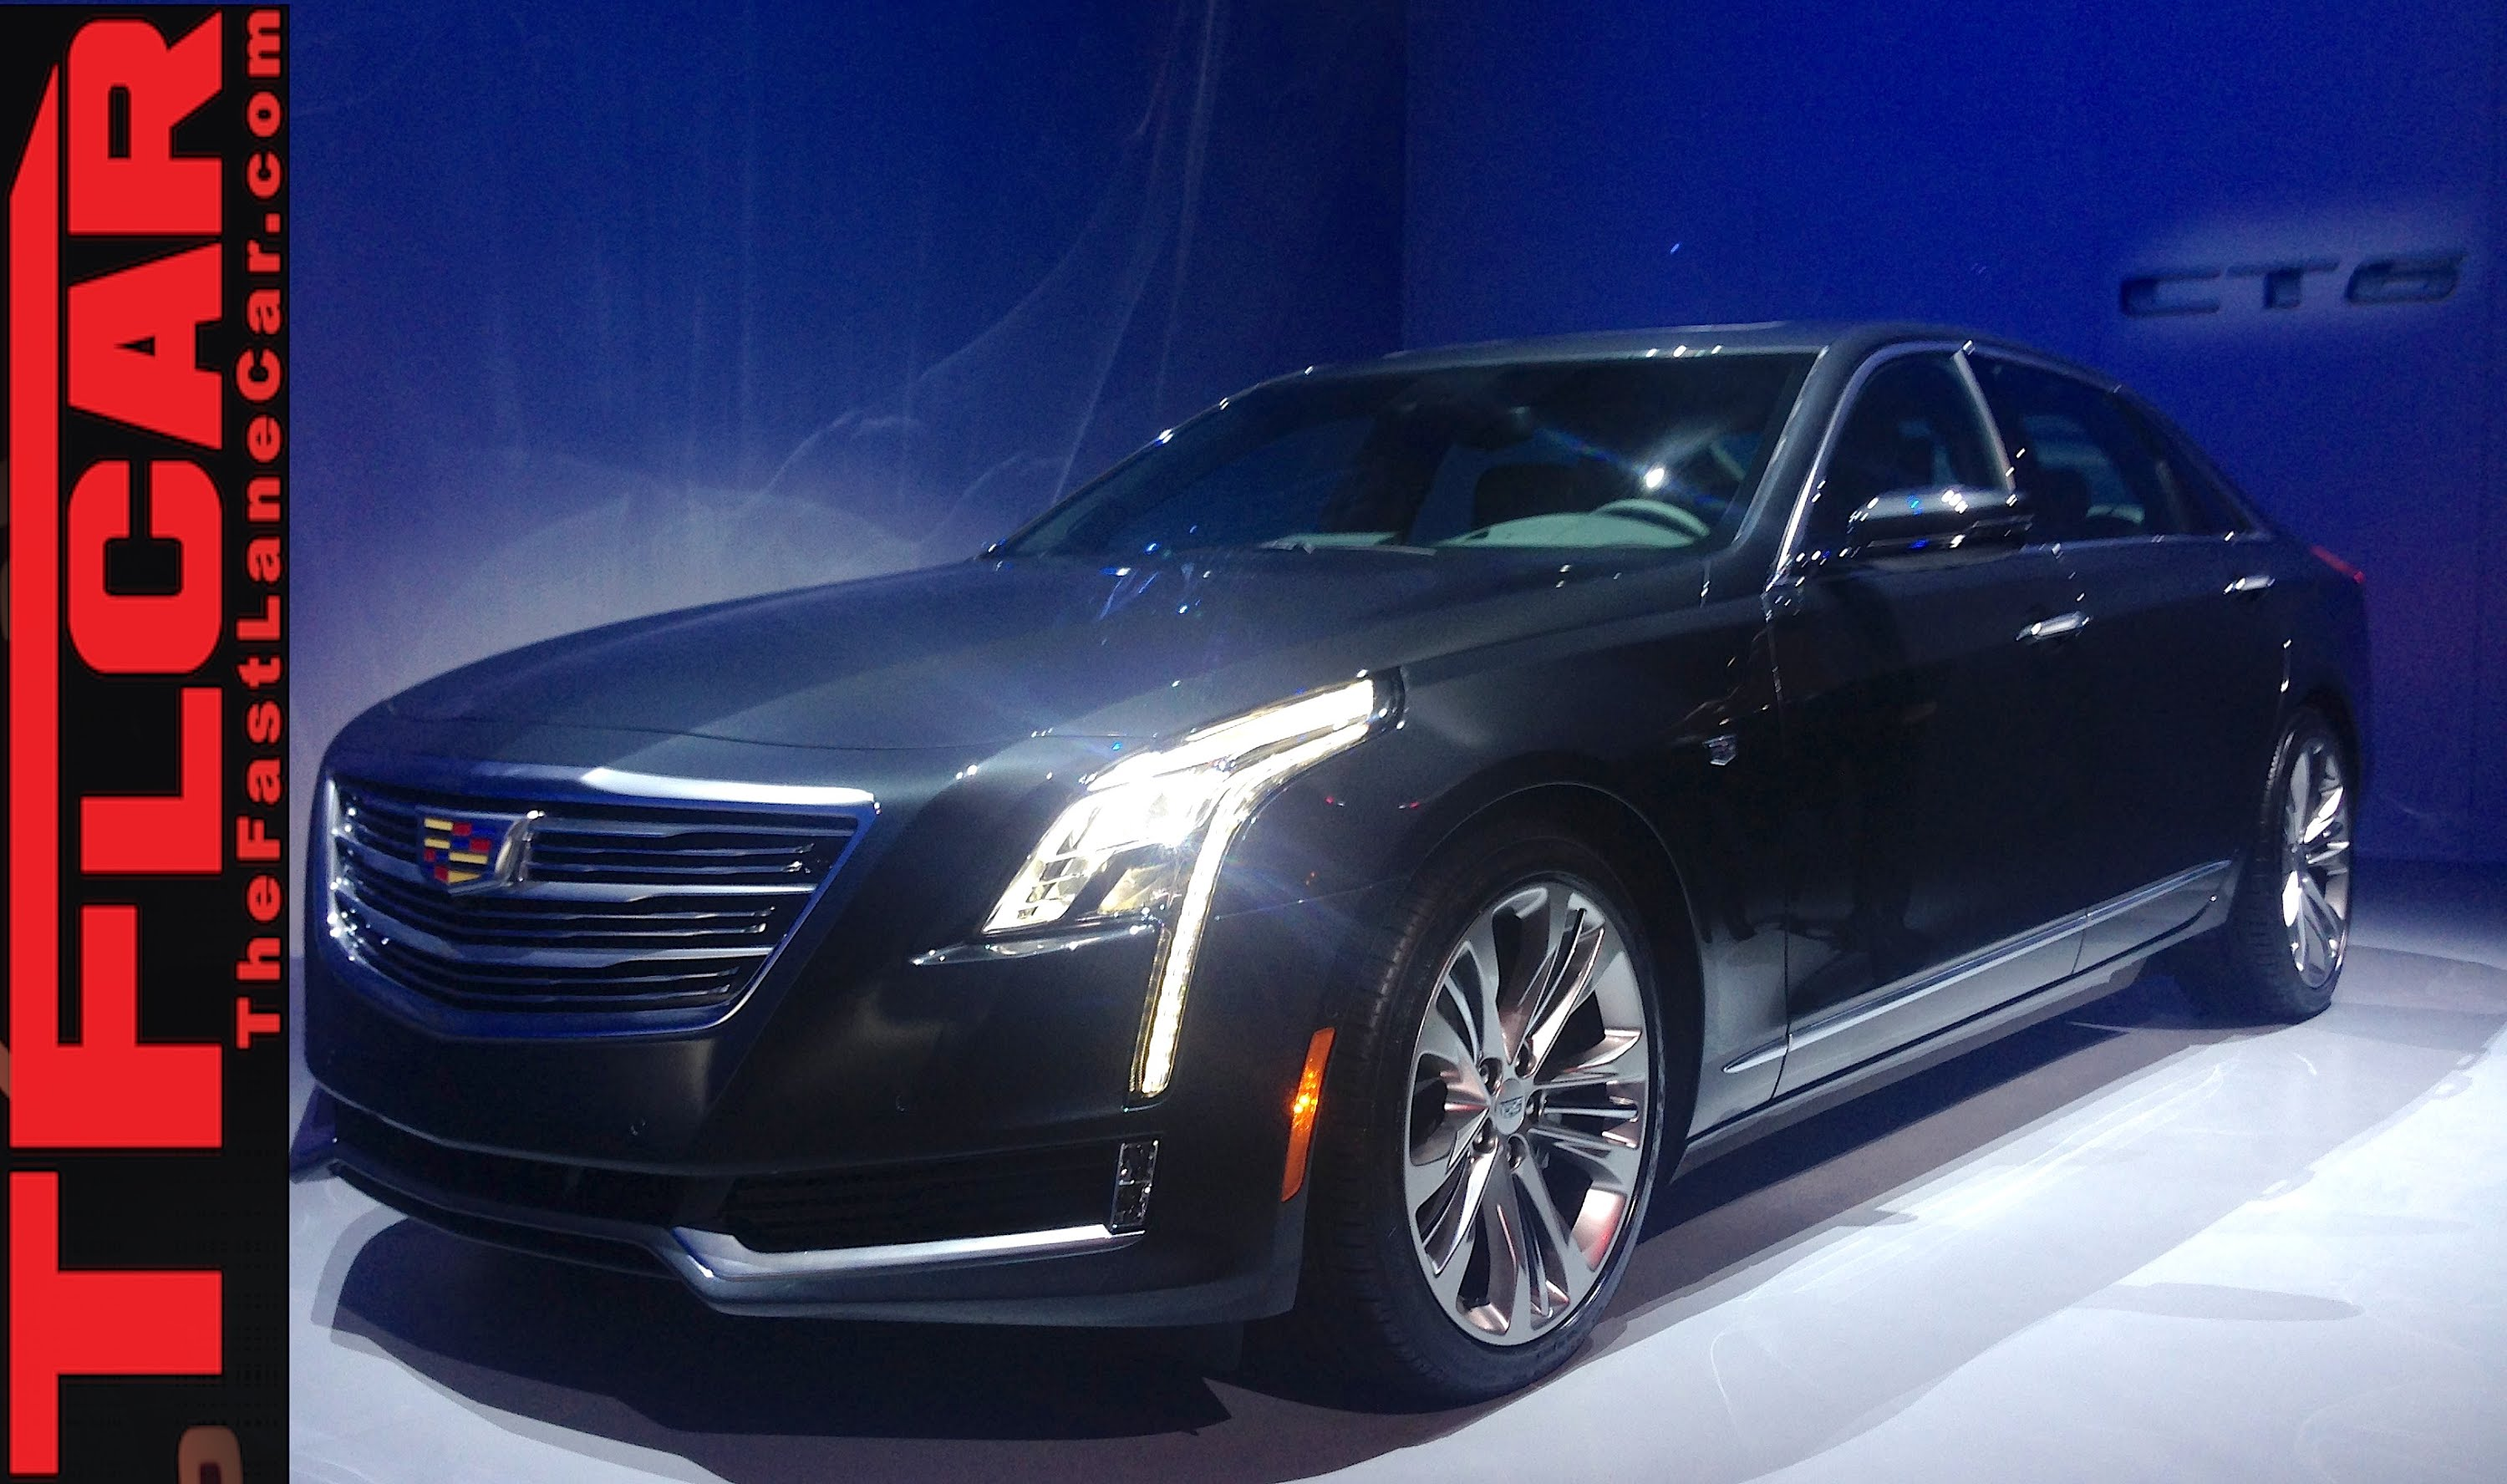 2019 Cadillac CT6 photo - 4